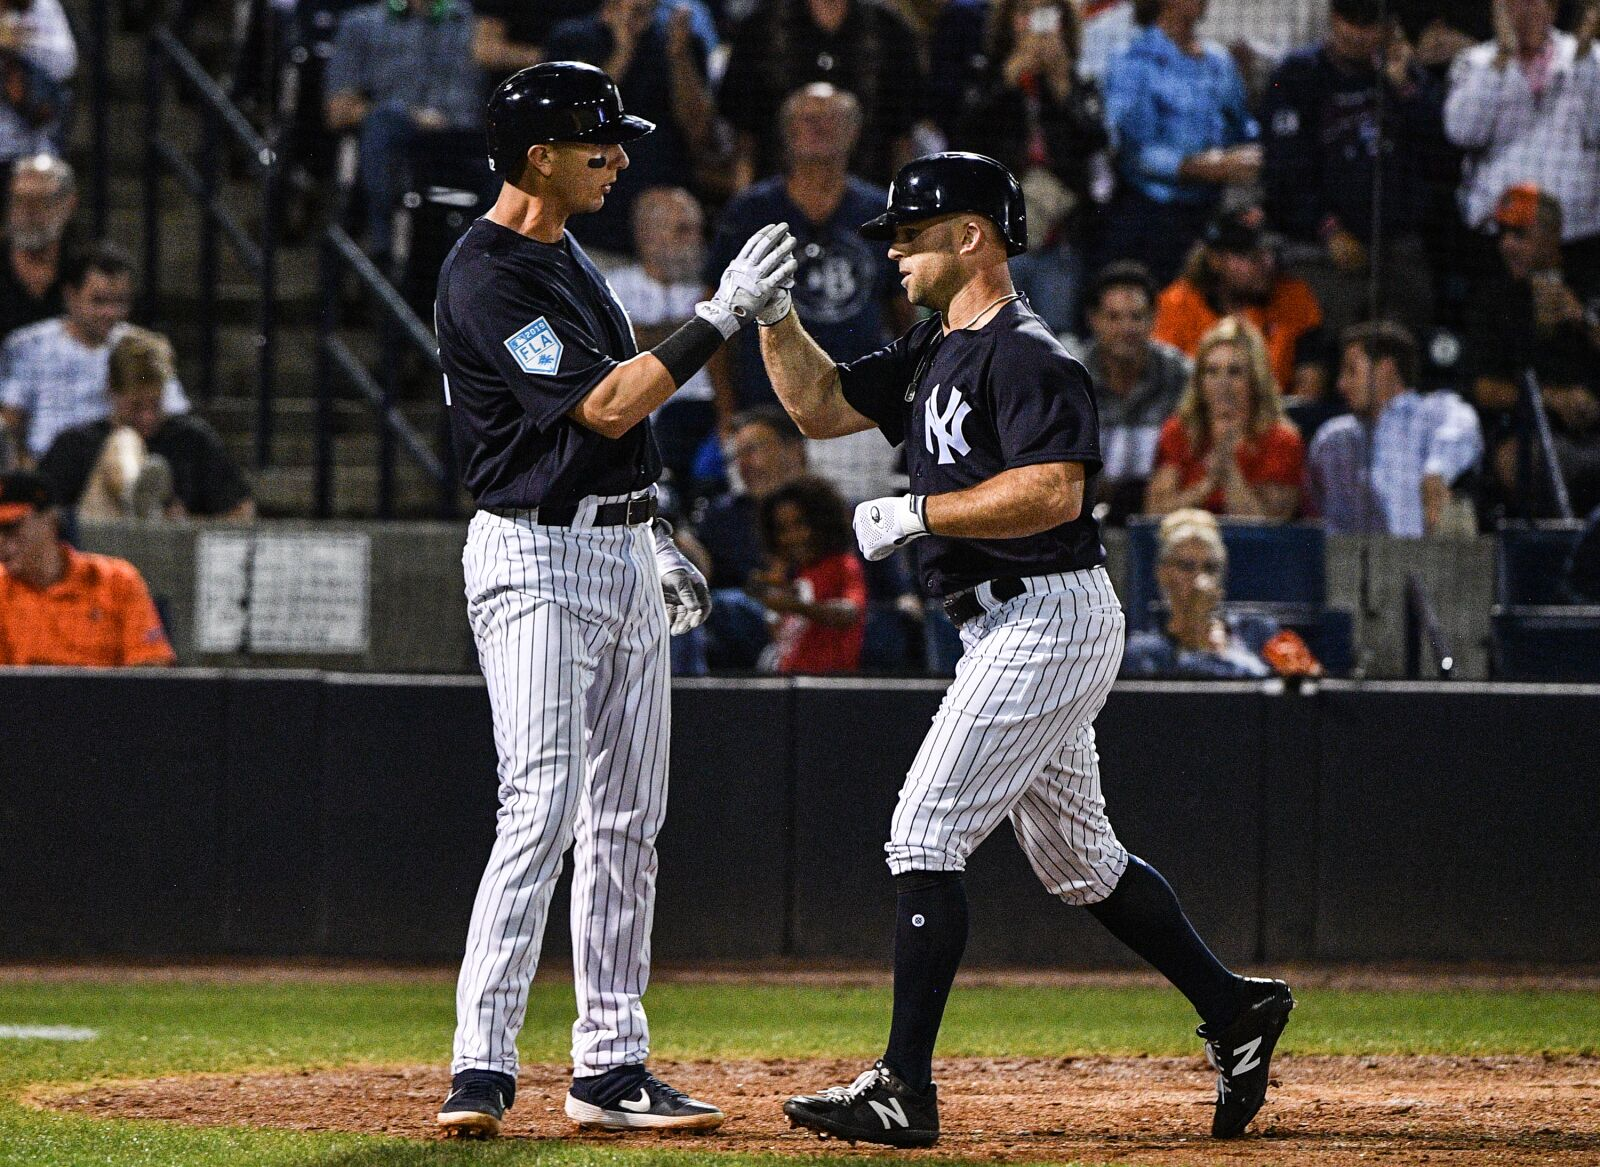 Yankees Troy Tulowitzki out to prove his doubters wrong